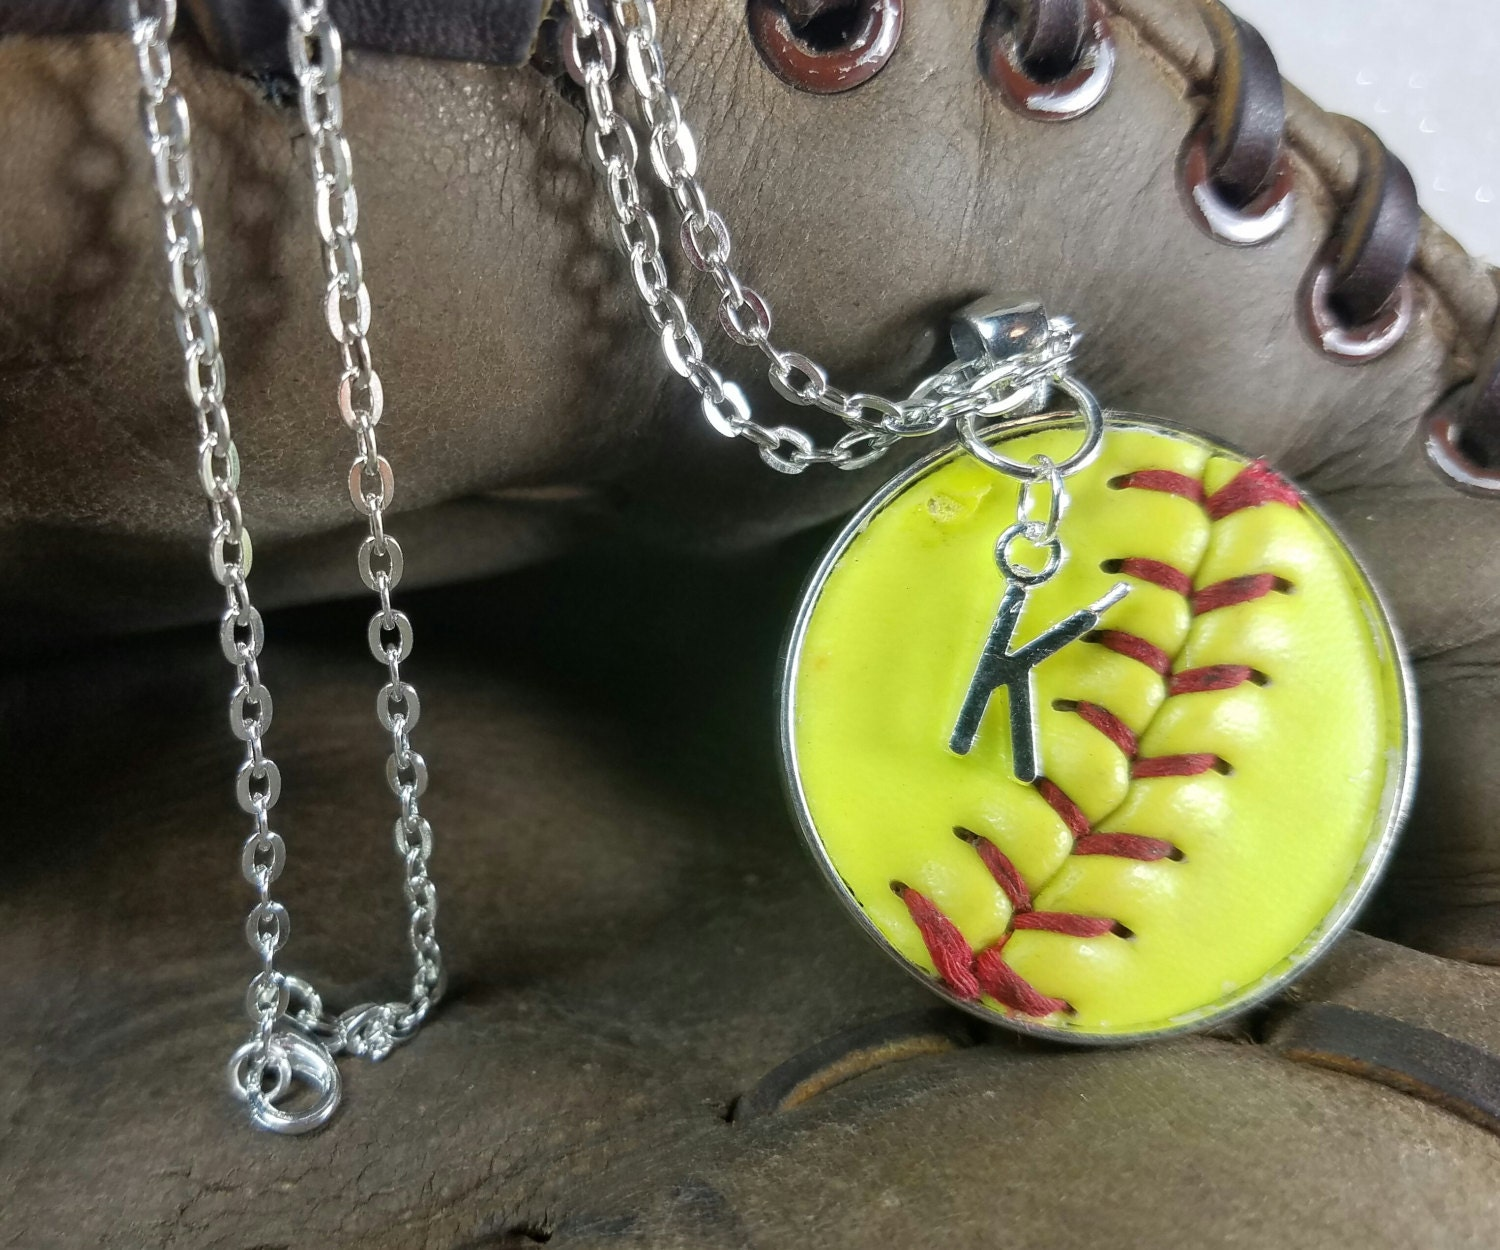 pendant jewelry skyrim gift softball fan i league baseball love women player necklace heart shopping products little